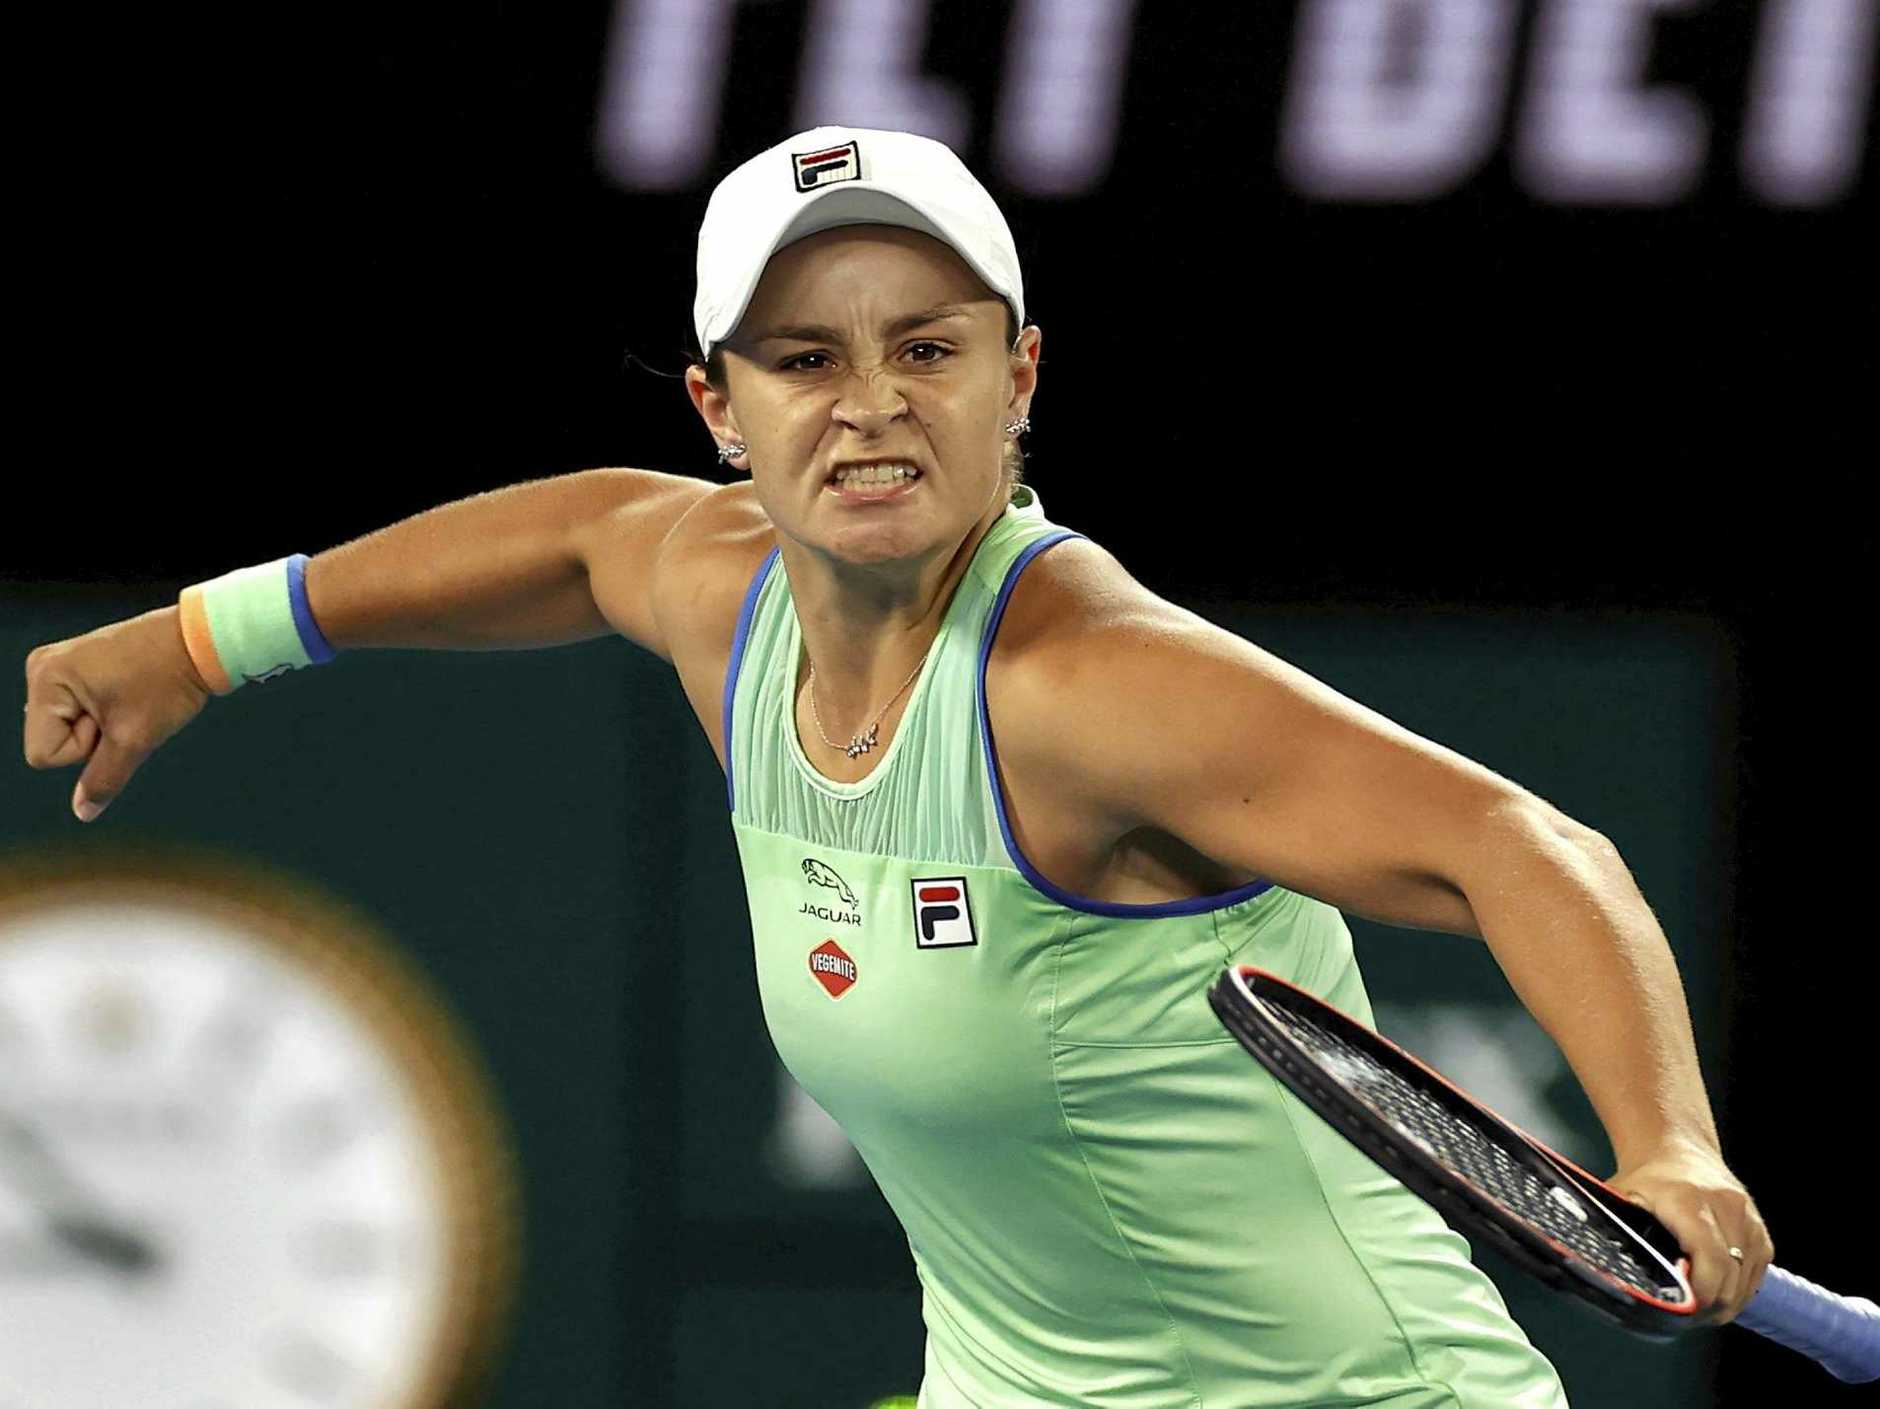 Ashleigh Barty is pumped after beating Alison Riske in their fourth-round singles clash at the Australian Open.  Picture: Andy Wong/AP